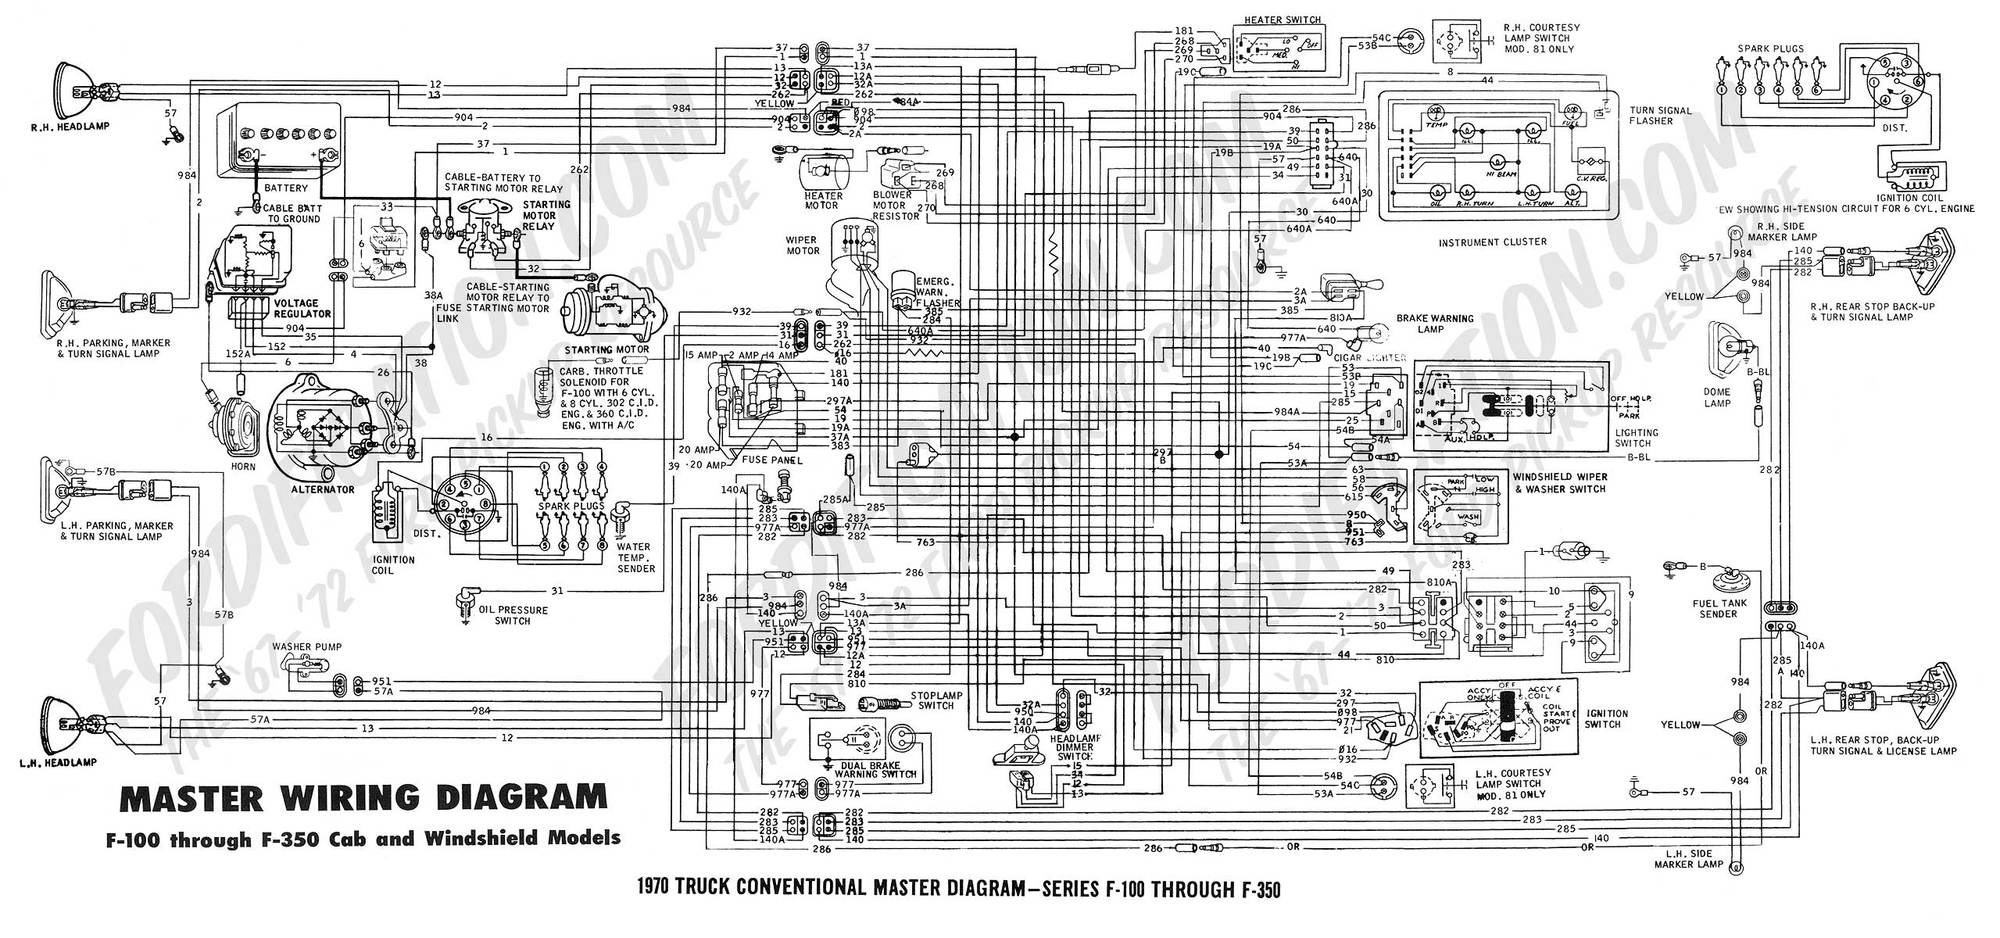 55 Thunderbird Dash Colored Wiring Diagram 42 1958 Amusing 1955 Ford Fairlane Gallery 80 70 Master 77b0650ff5823fc998e119c71f59ee29a8fbe89aresize6652c312